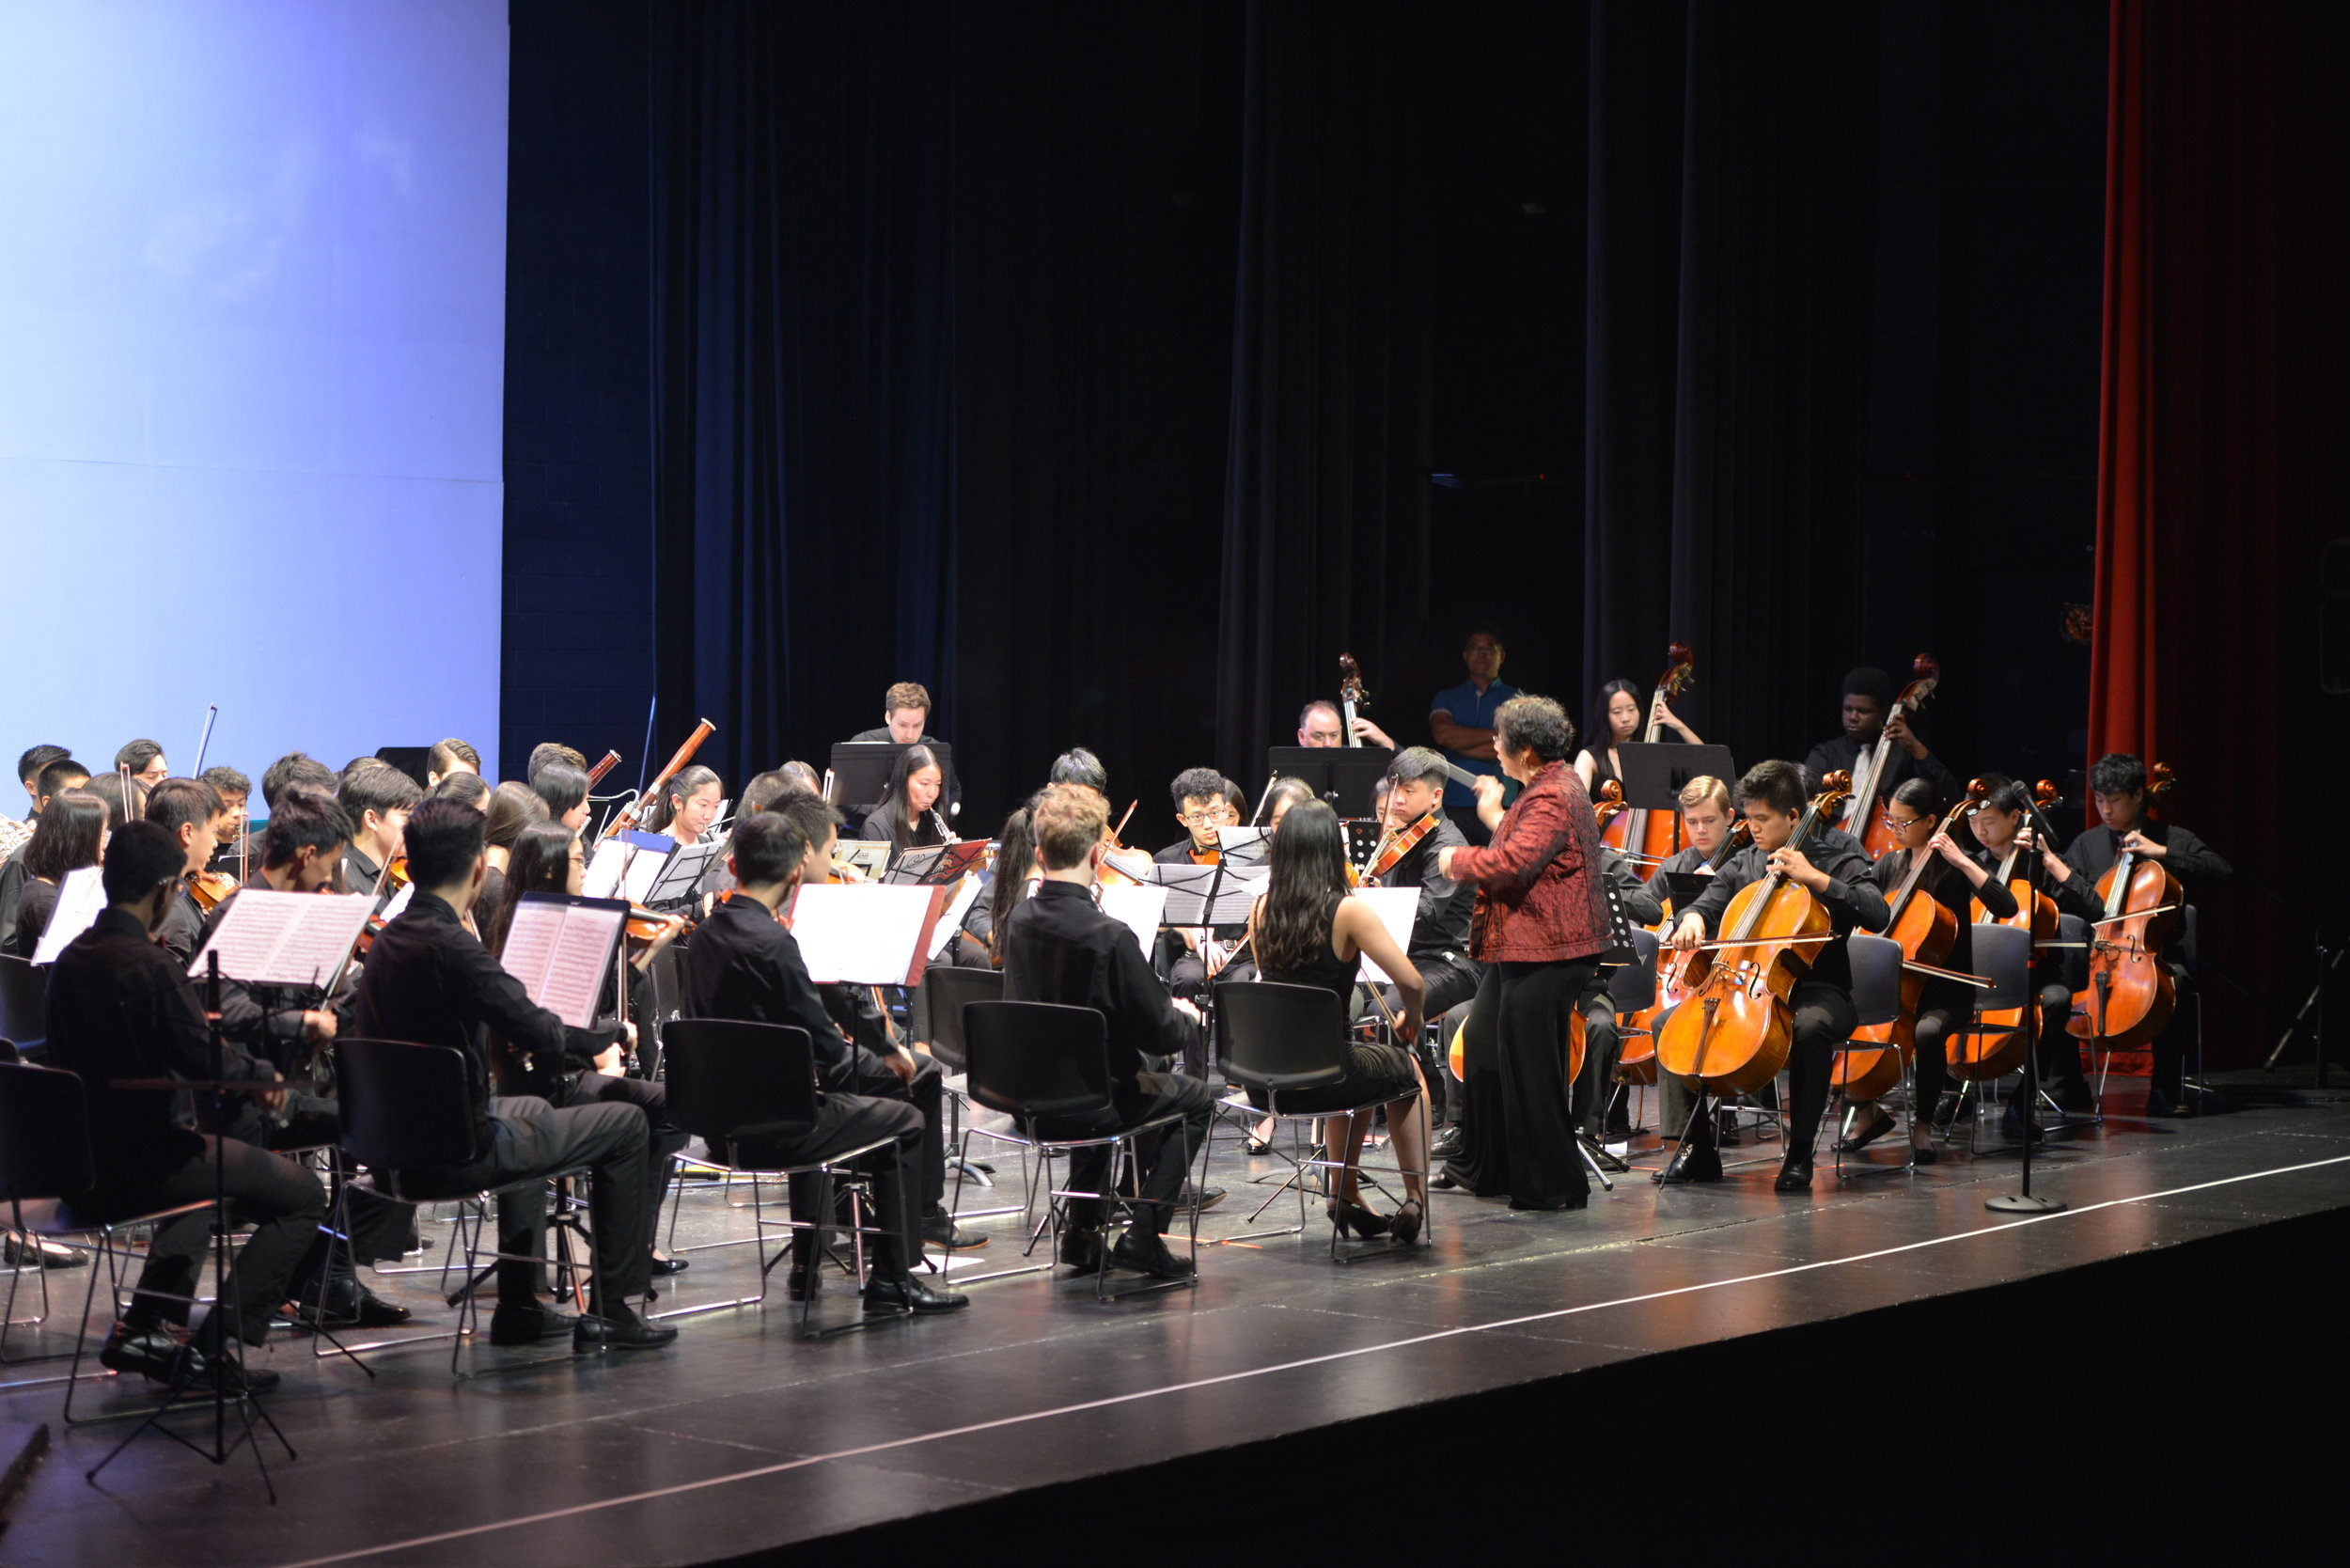 An intense performance of Beethoven's Symphony No. 5 in C minor